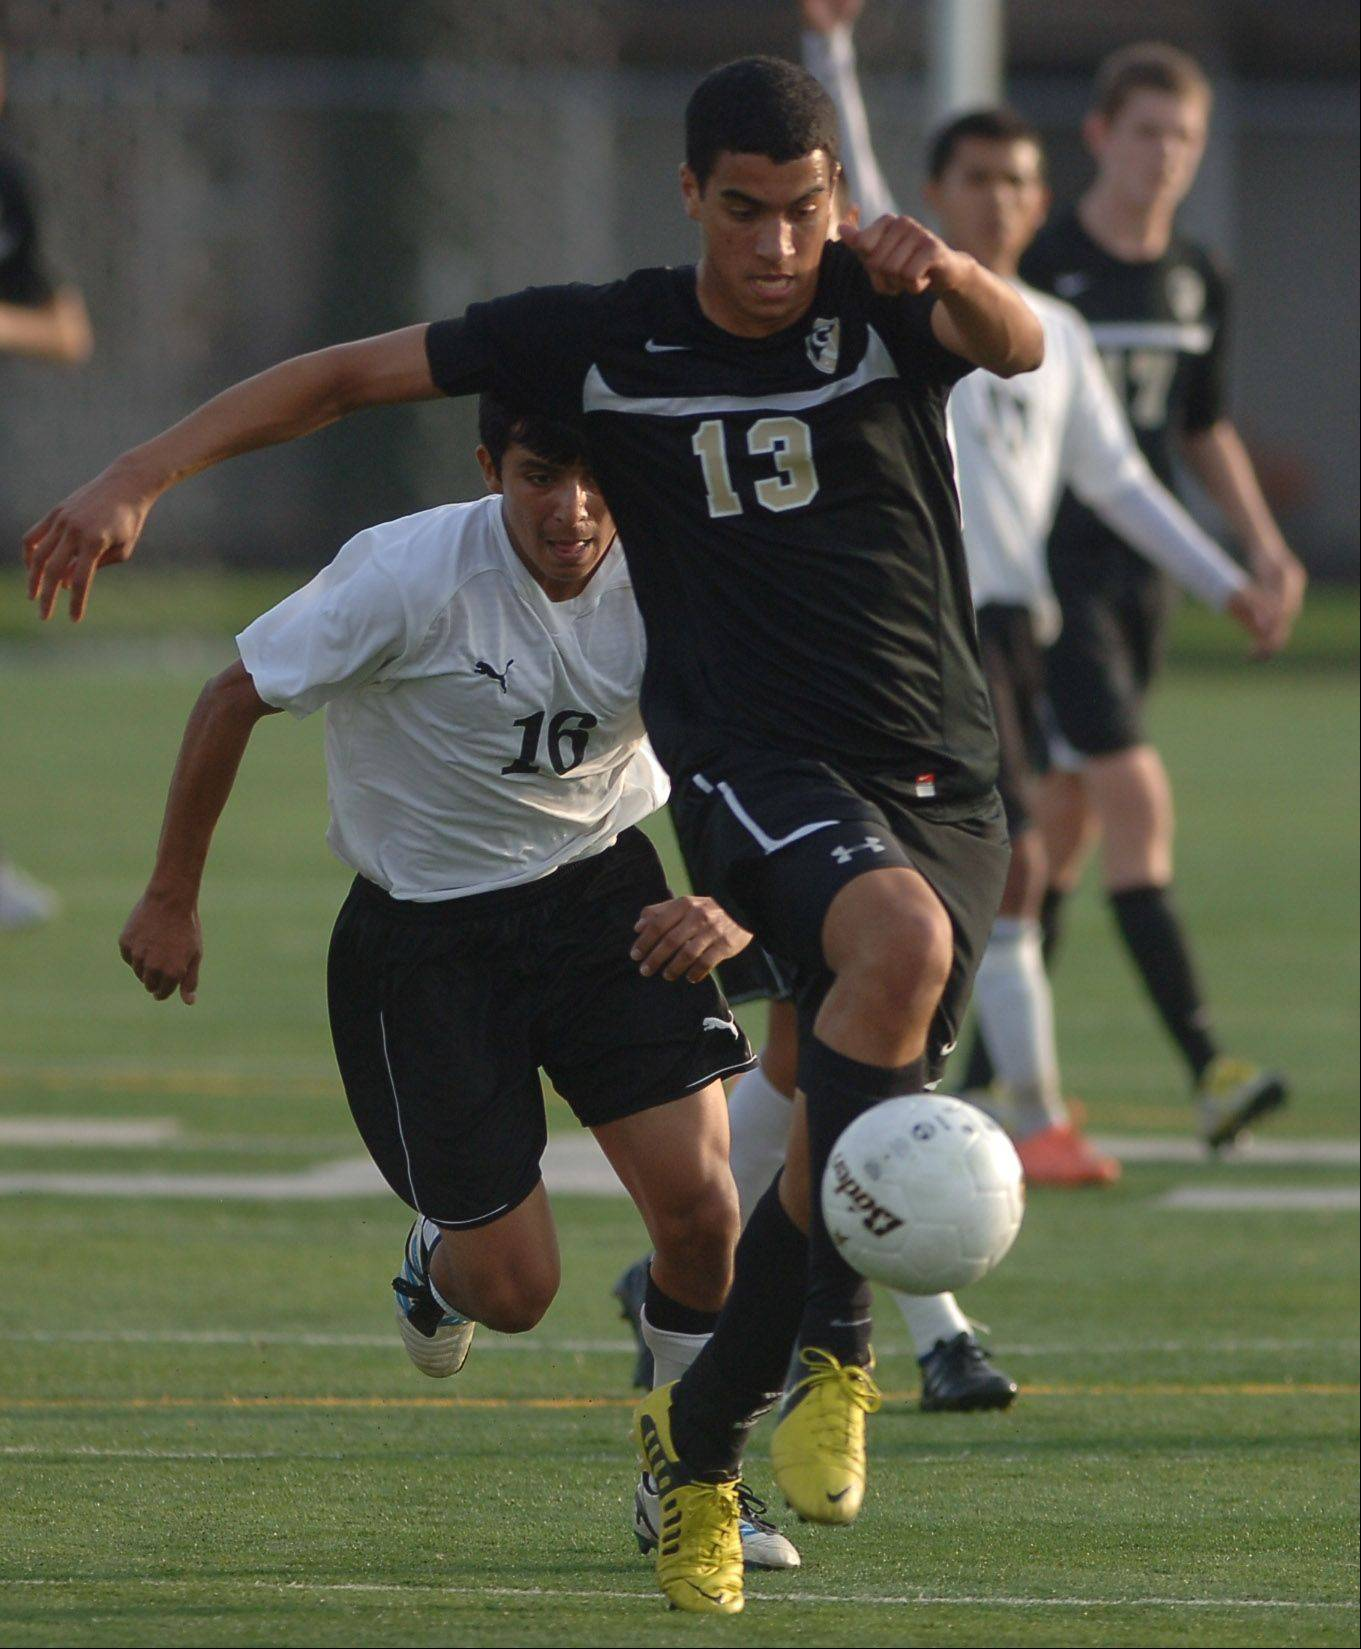 Grayslake North�s Arnaud Laroche-Bataille (13) takes control of the ball in front of Harvard�s Isaih Solis during Wednesday�s Class 2A soccer sectional semifinal game at Grayslake Central.